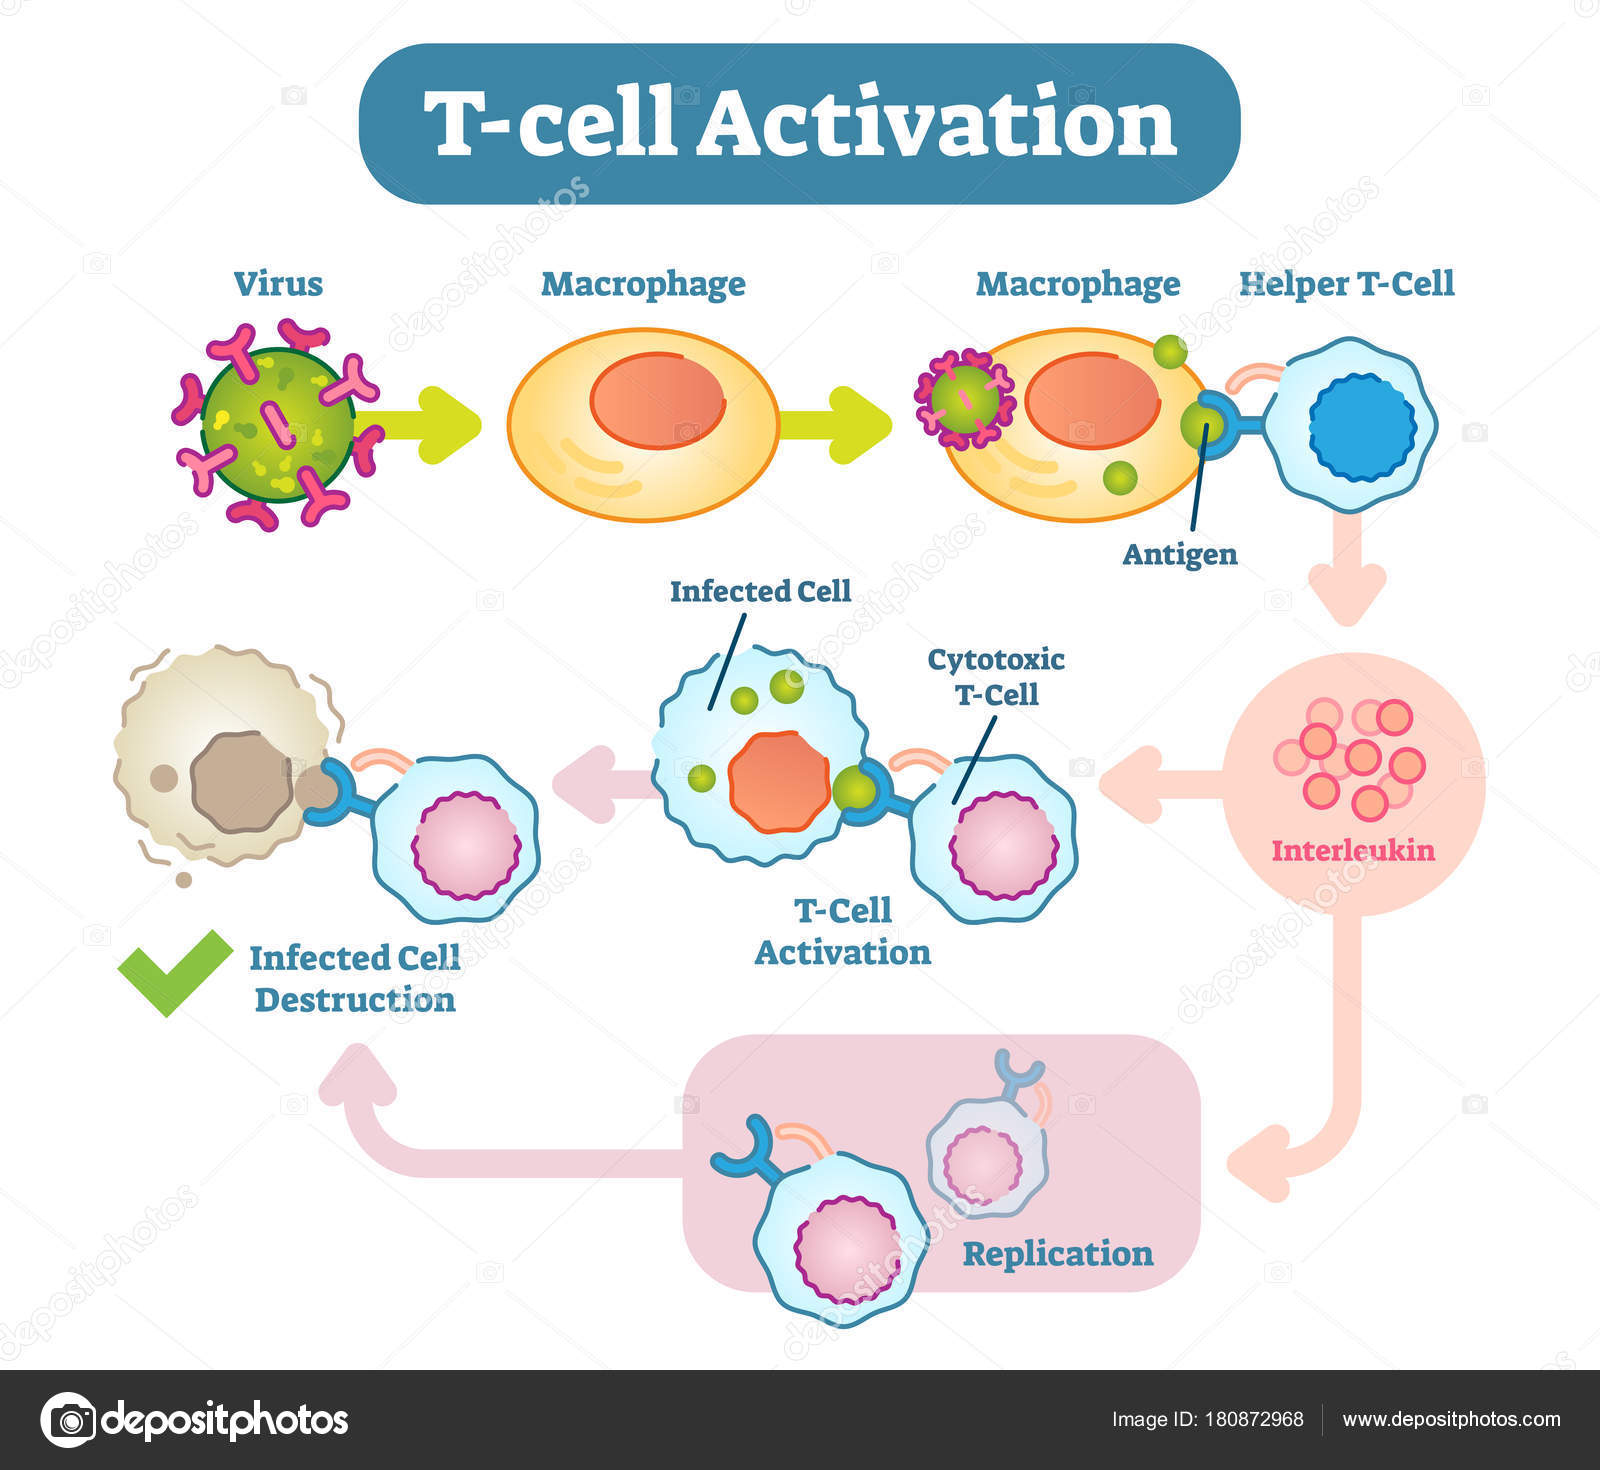 T cell activation diagram vector scheme illustration stock a t cell or t lymphocyte is a type of lymphocyte a subtype of white blood cell that plays a central role in cell mediated immunity vector by normaals ccuart Images